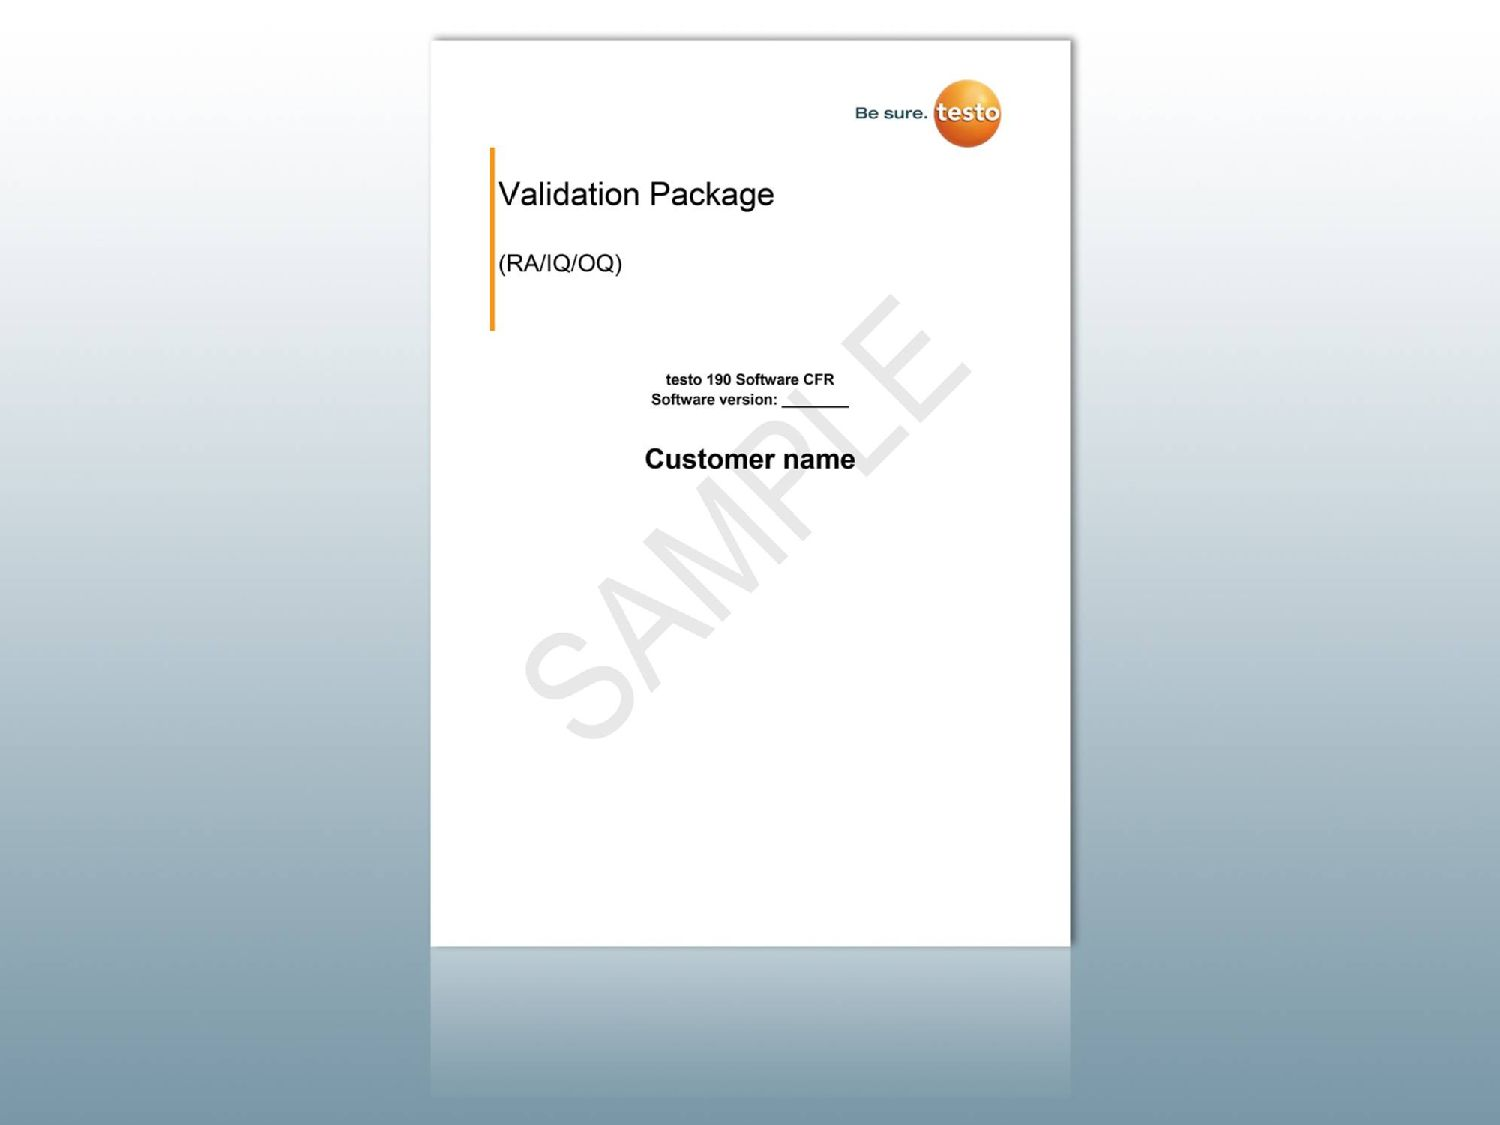 Validation package testo 190 CFR software